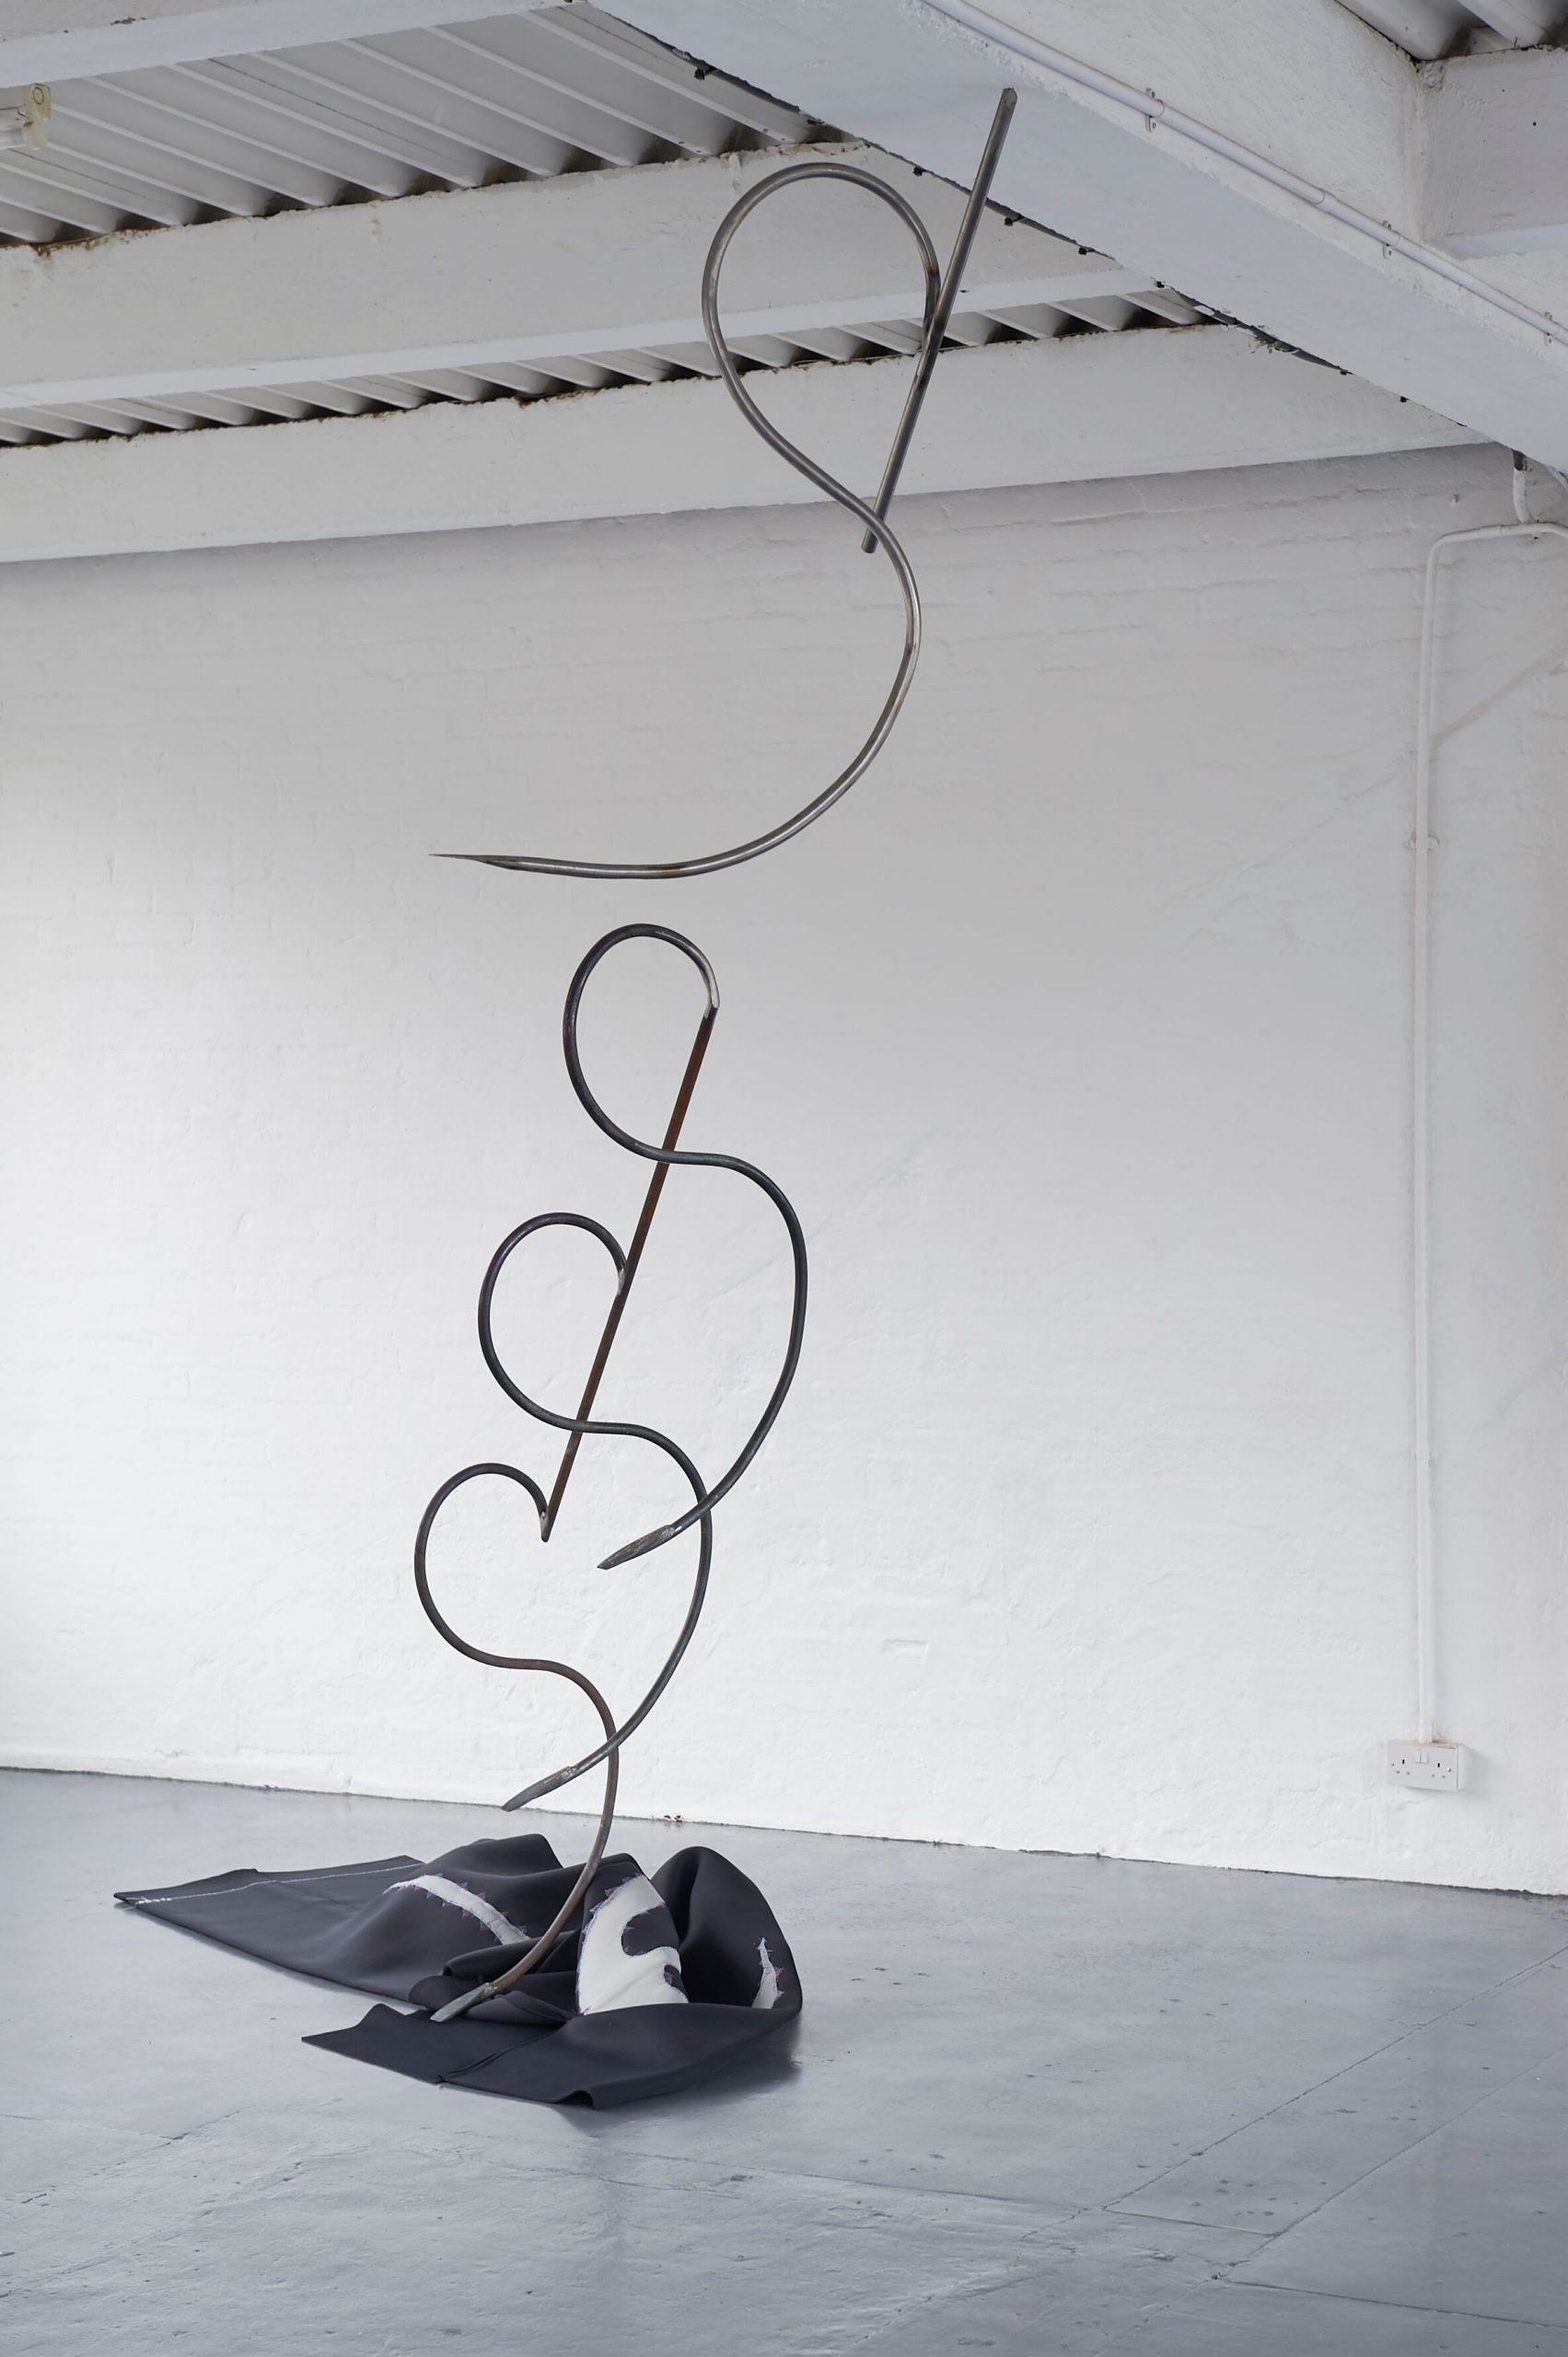 A piece of black neoprene lies on the ground, out of this rises a steel spiral sculpture that reaches towards the ceiling.